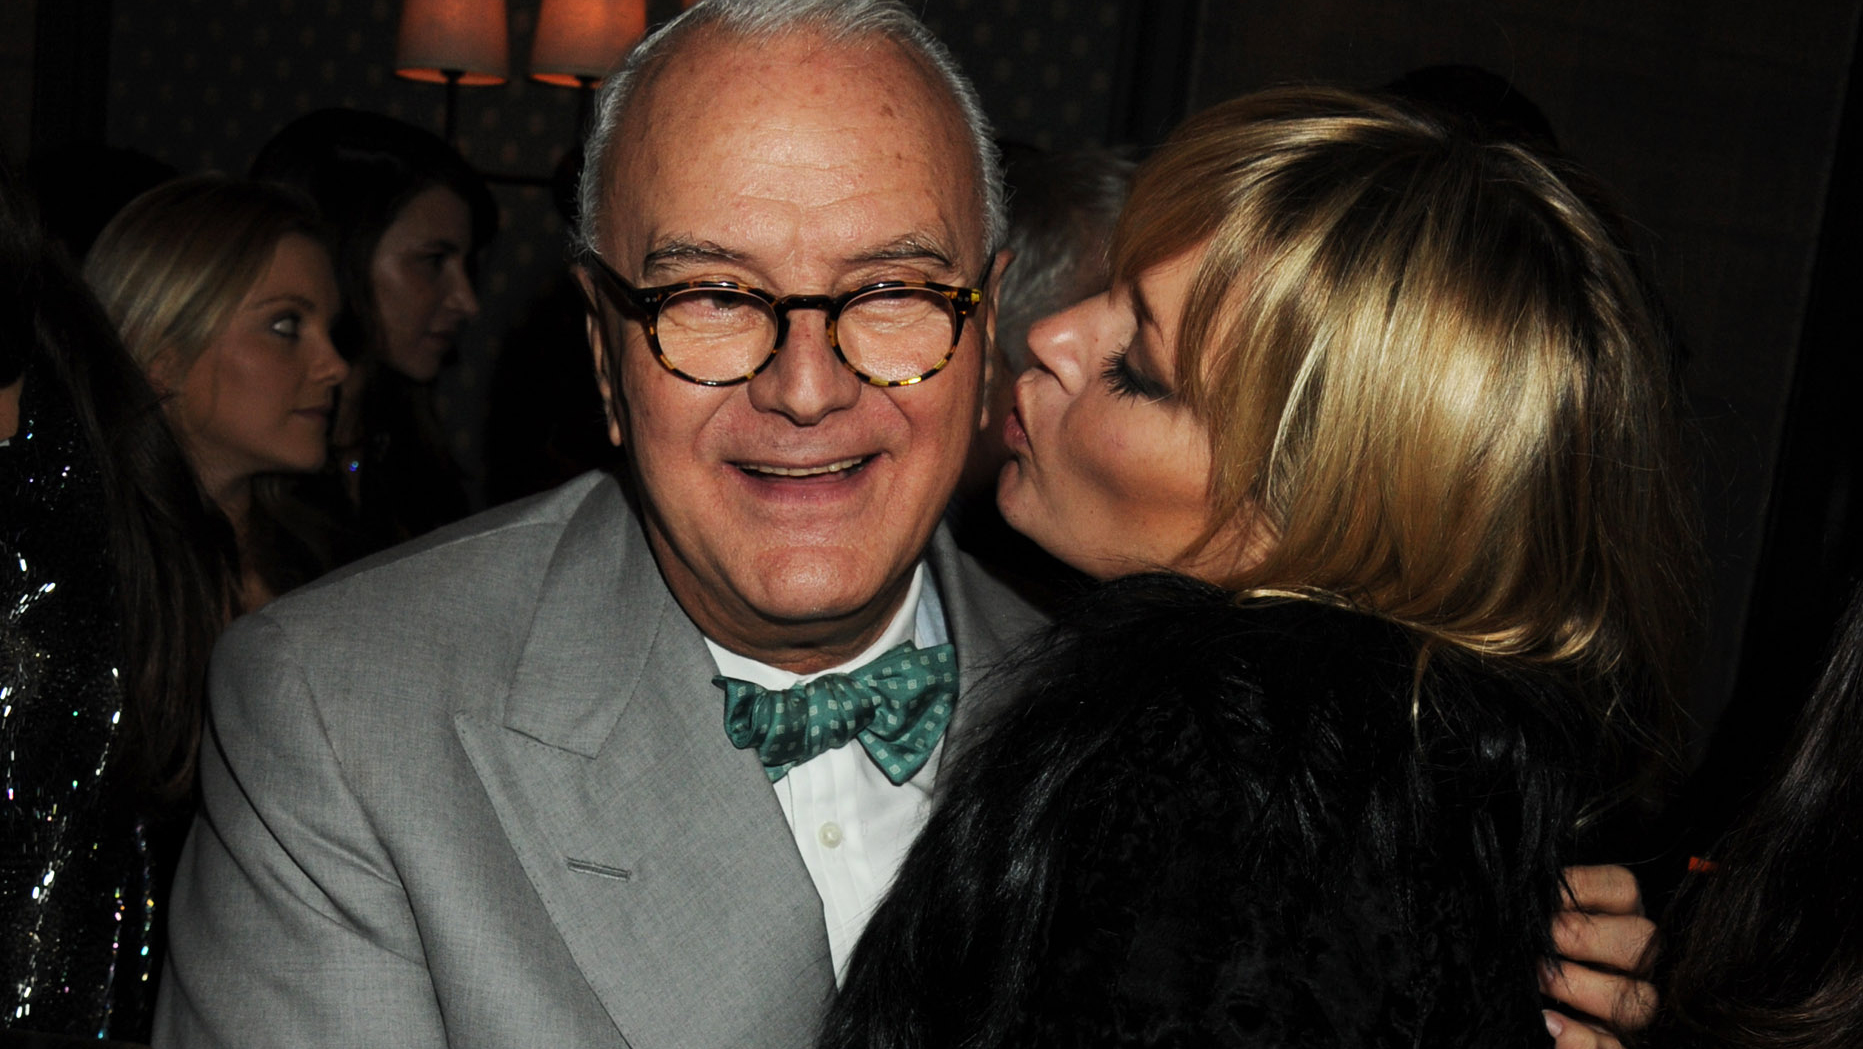 Manolo Blahnik disses Kim Kardashian-West and laments the rise of Instagram fame